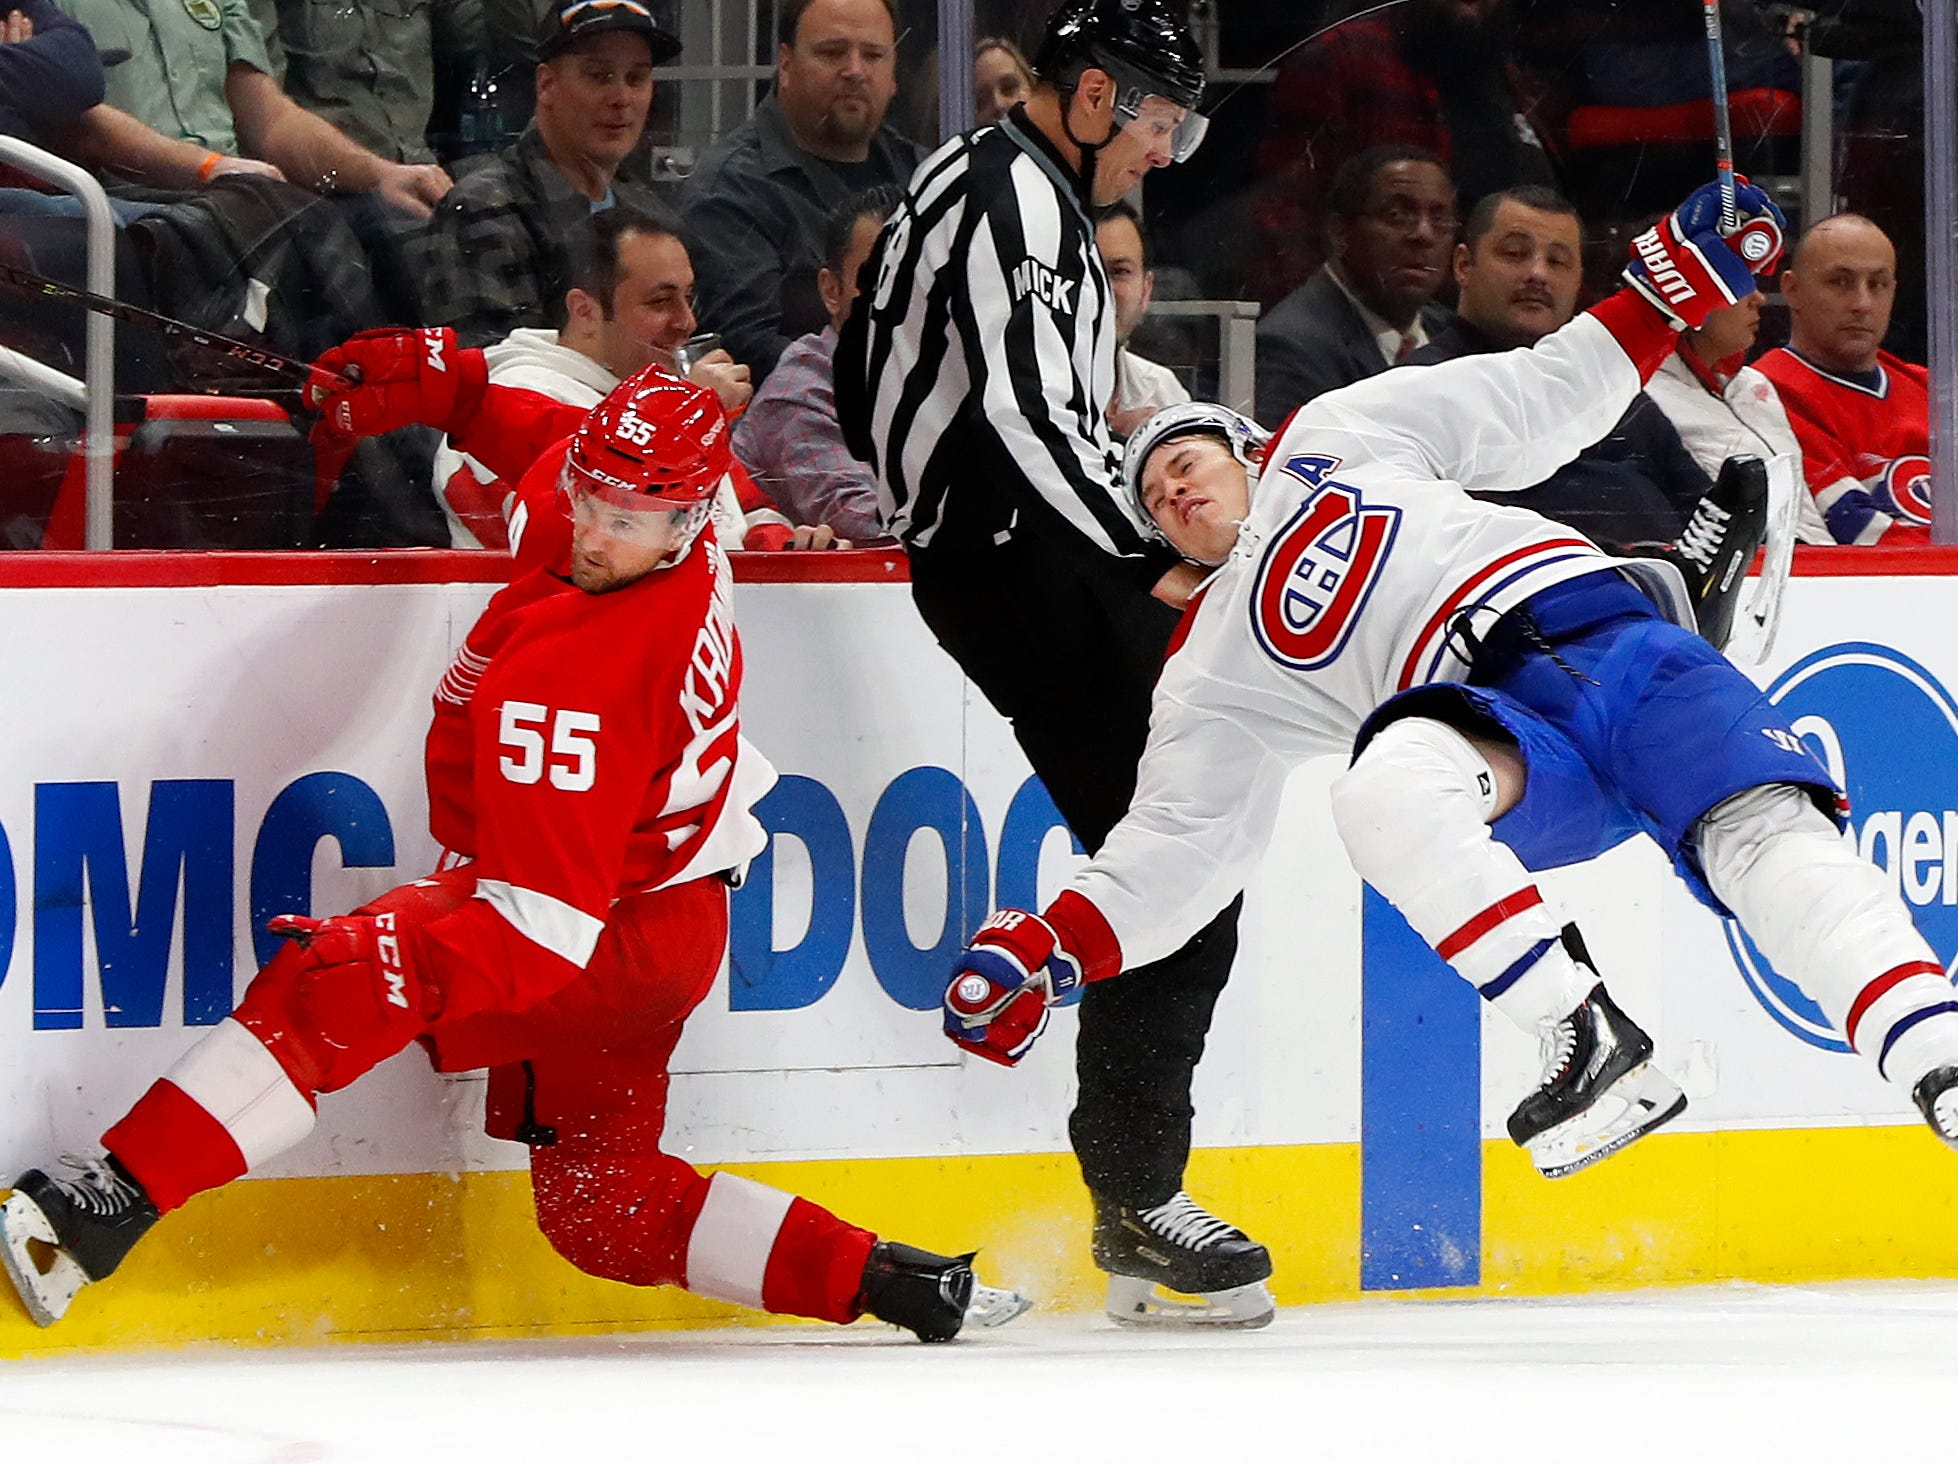 Detroit Red Wings defenseman Niklas Kronwall (55) checks Montreal Canadiens right wing Brendan Gallagher (11) in the third period.